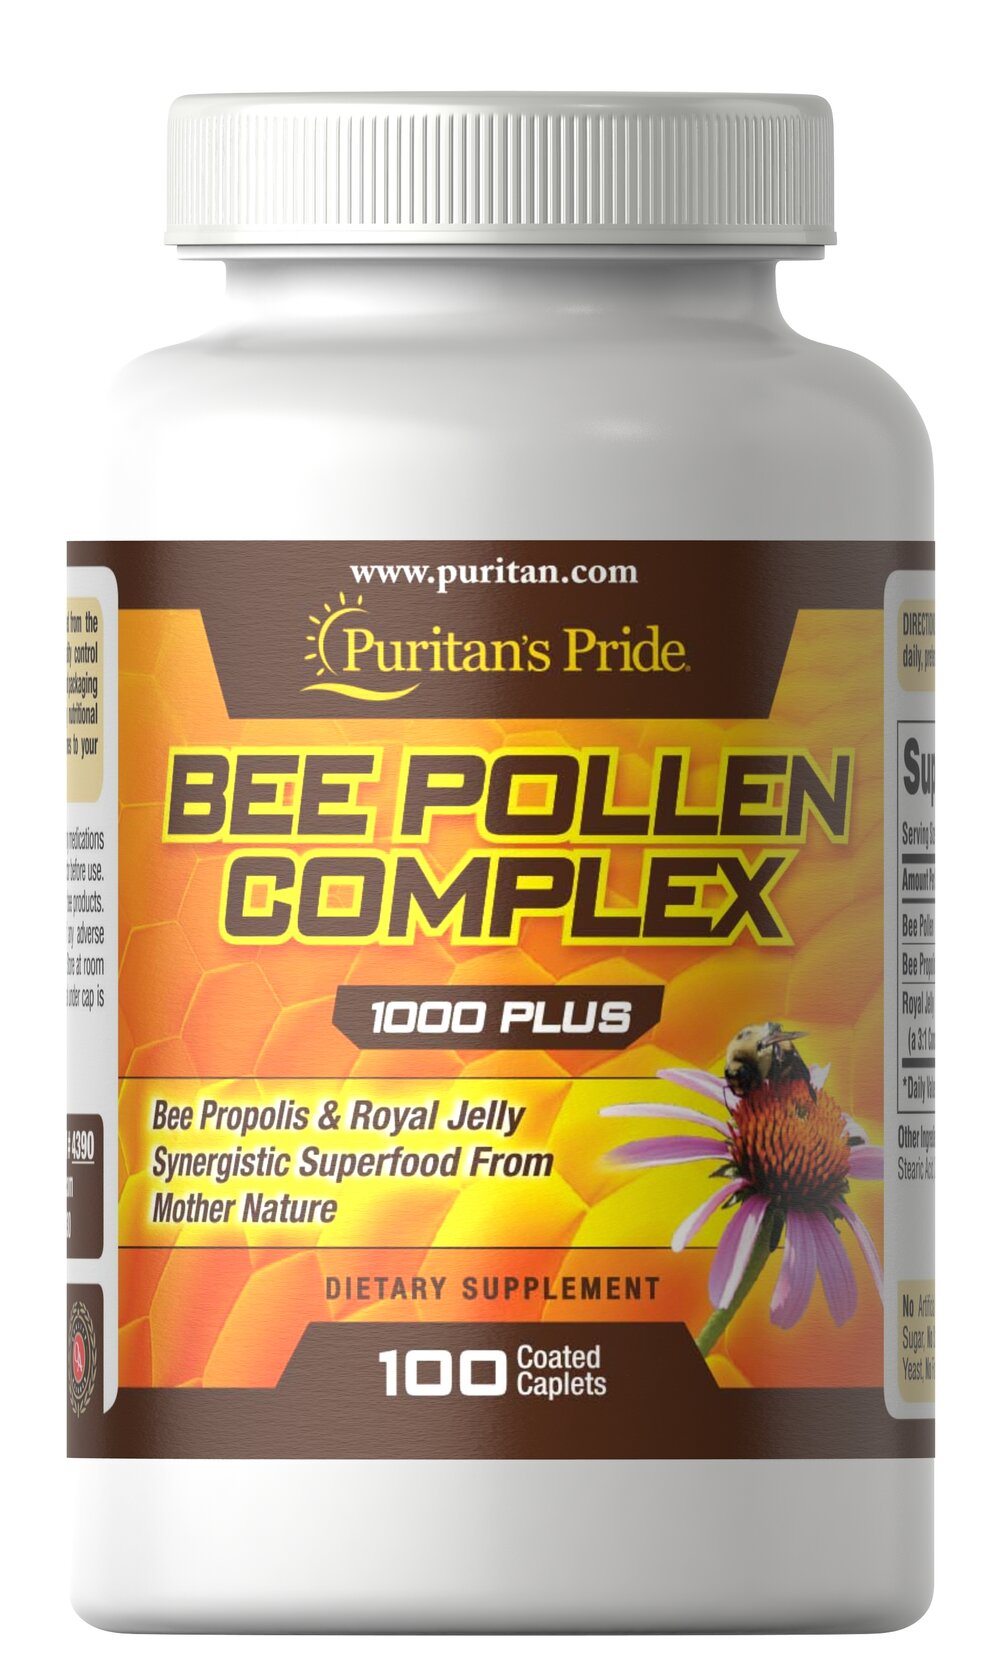 Bee Pollen Complex <p>All 3 Bee Nutrients in One Convenient Tablet!</p><p>Bee Pollen: 1000 mg.</p><p>Bee Propolis: 10 mg.</p><p>Royal Jelly: 10 mg</p> 100 Caplets 1000 mg $19.99